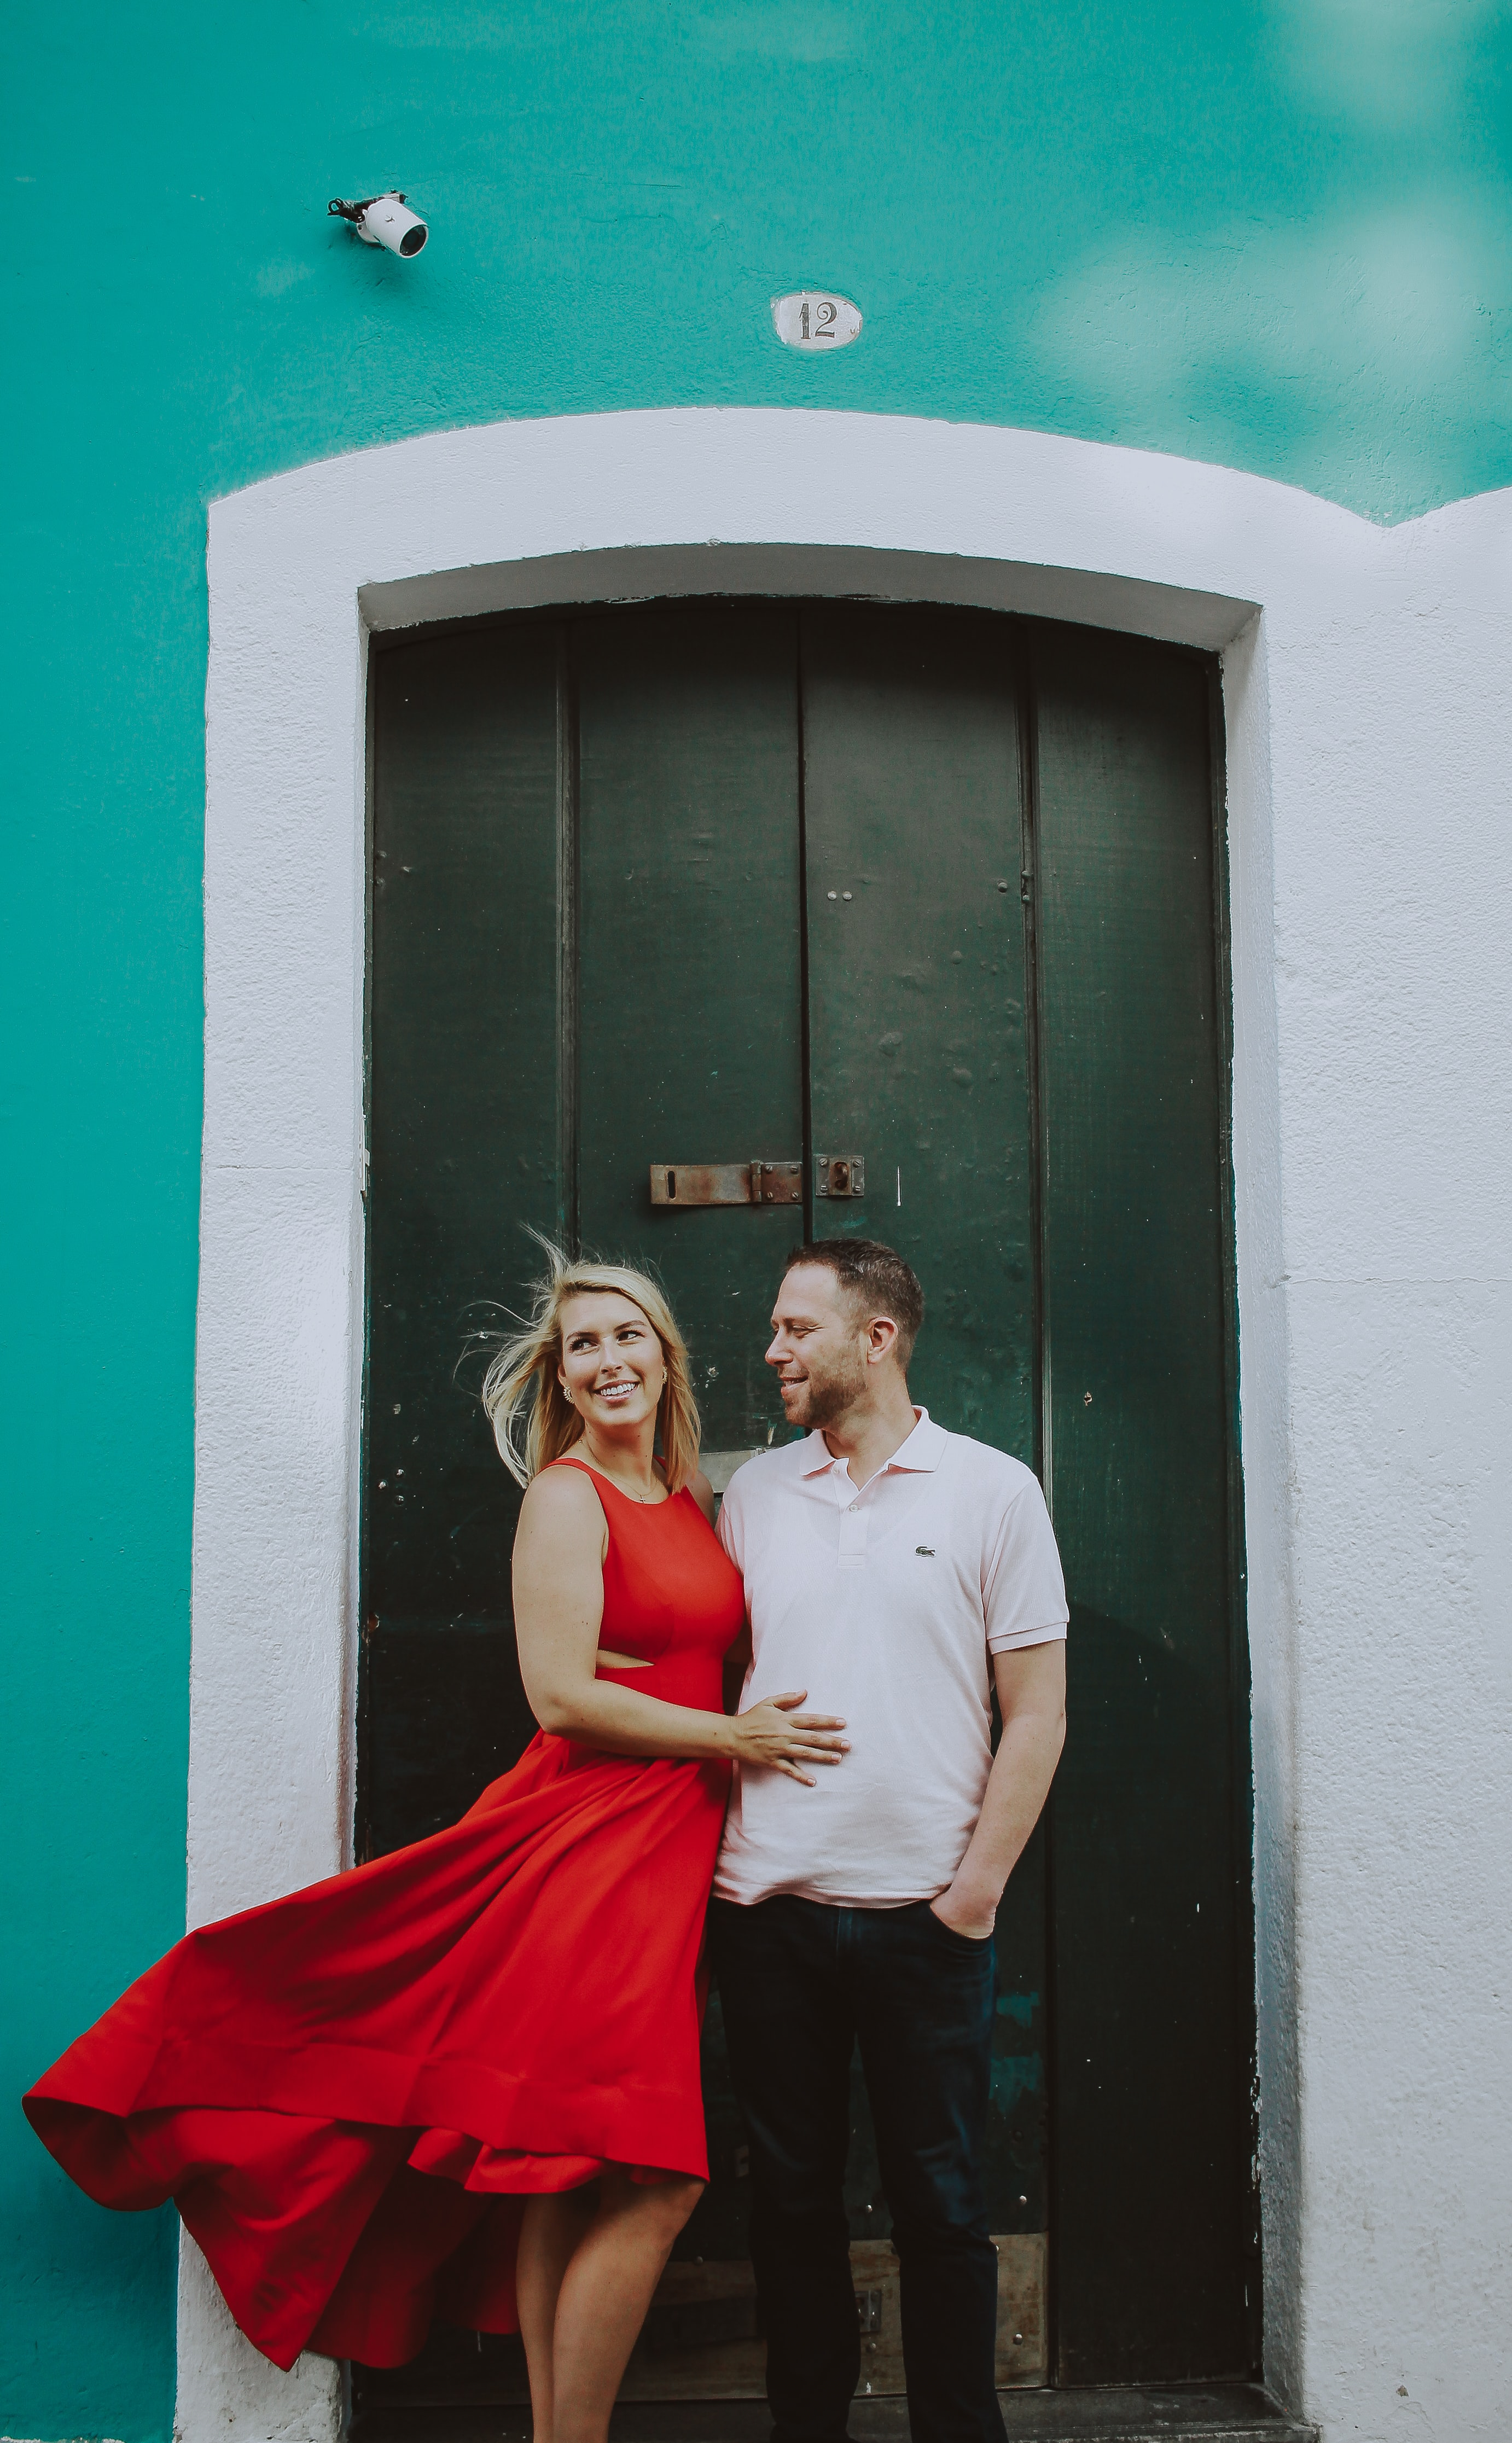 man and woman standing near door during daytime